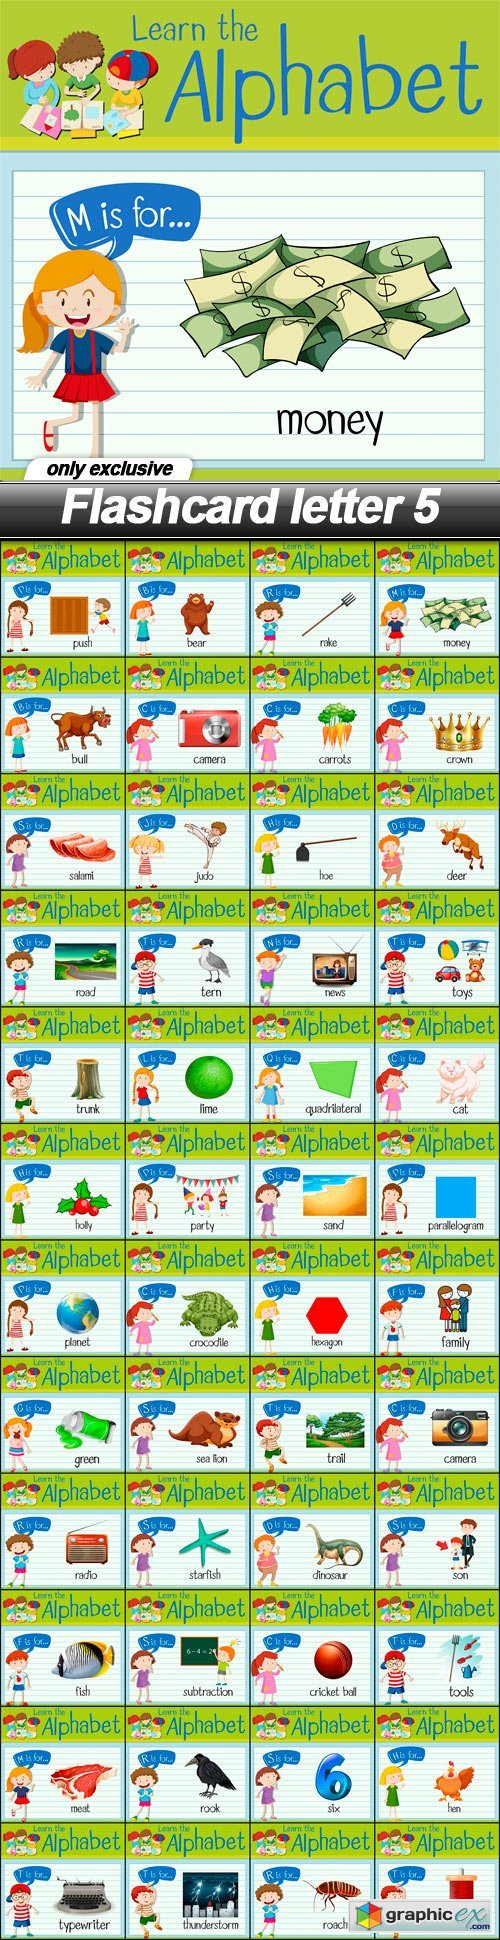 Flashcard letter 5 - 48 EPS